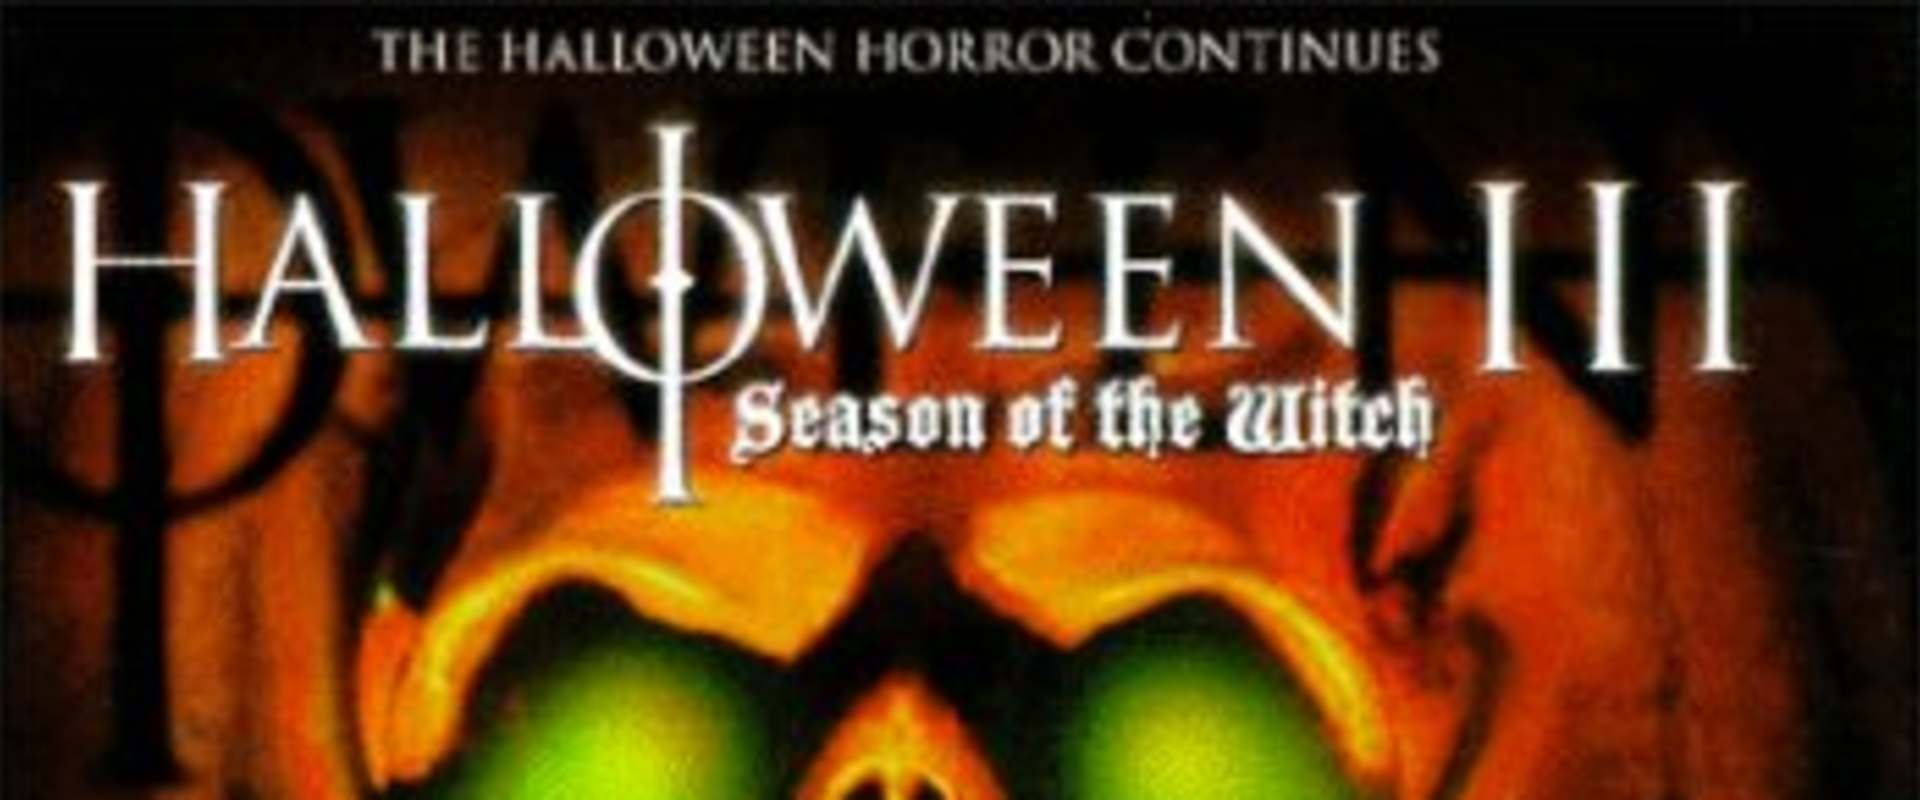 Watch Halloween III: Season of the Witch on Netflix Today